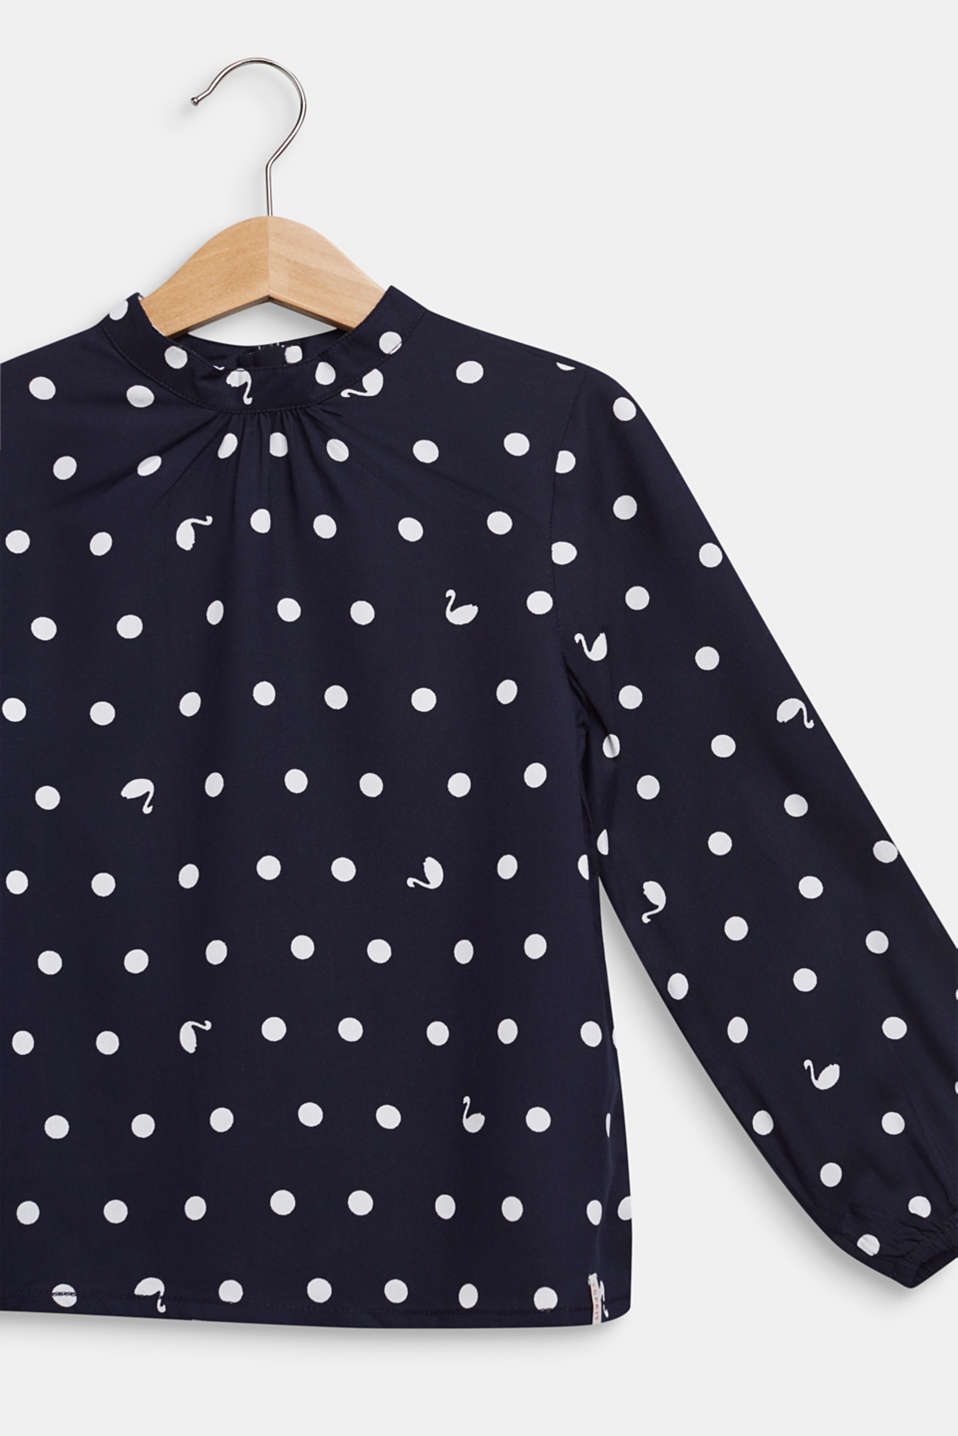 Blouse with a polka dot print and a band collar, NAVY BLUE, detail image number 2